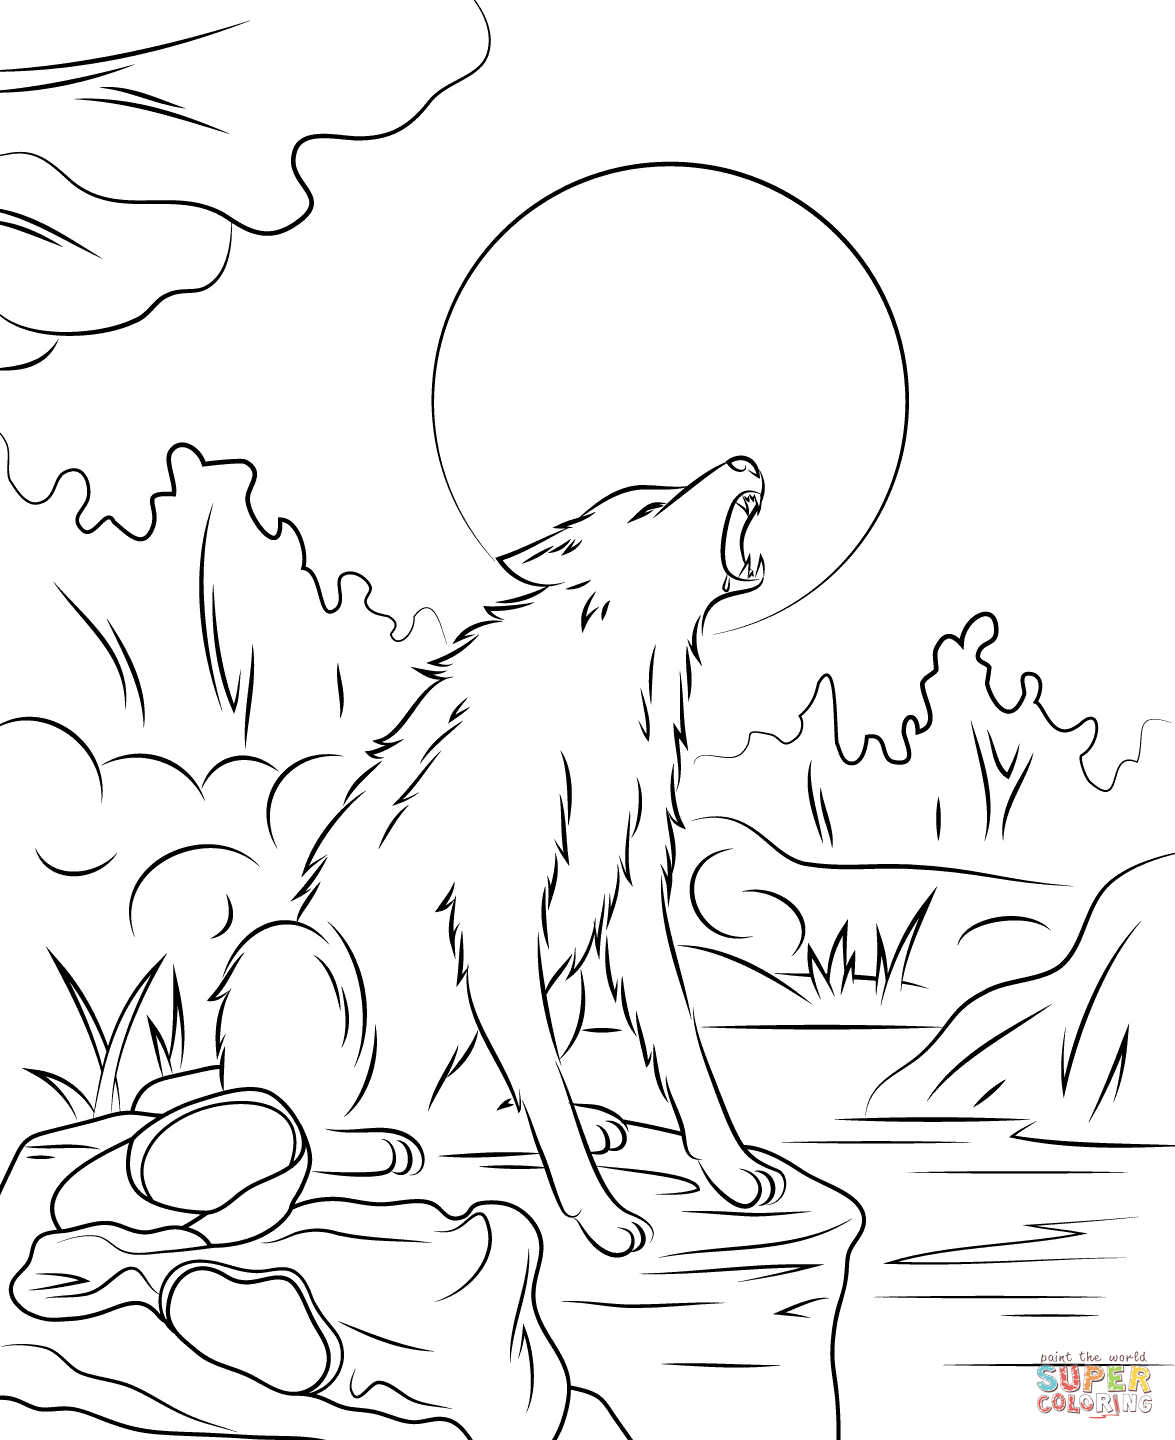 Drawn wolfman coloring page Coloring Werewolf coloring the pages